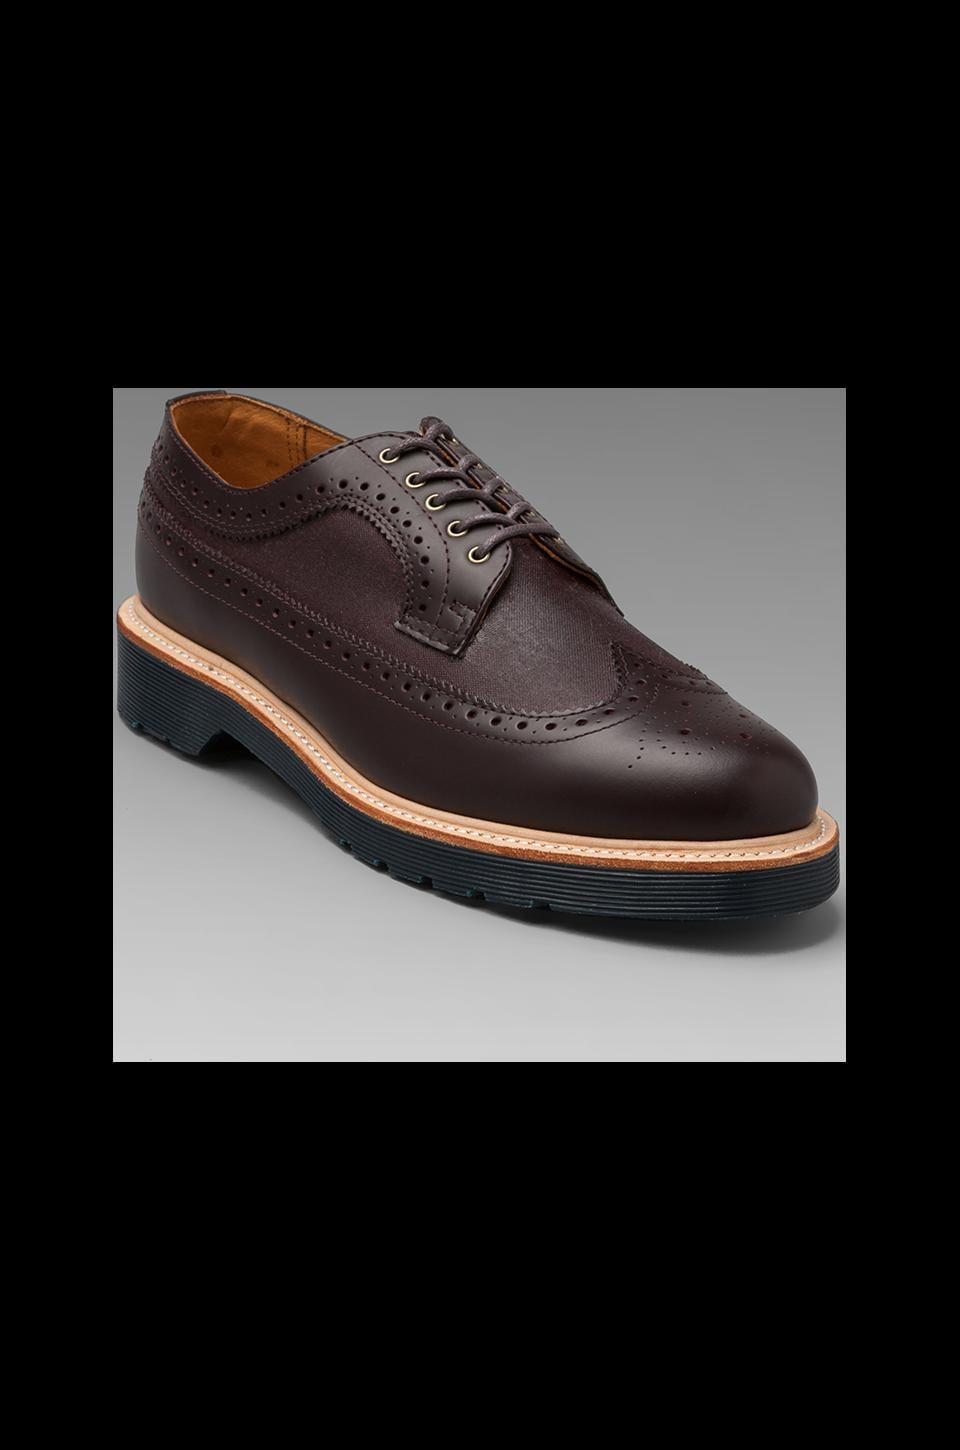 Dr. Martens Alfred Brogue Shoe in Oxblood